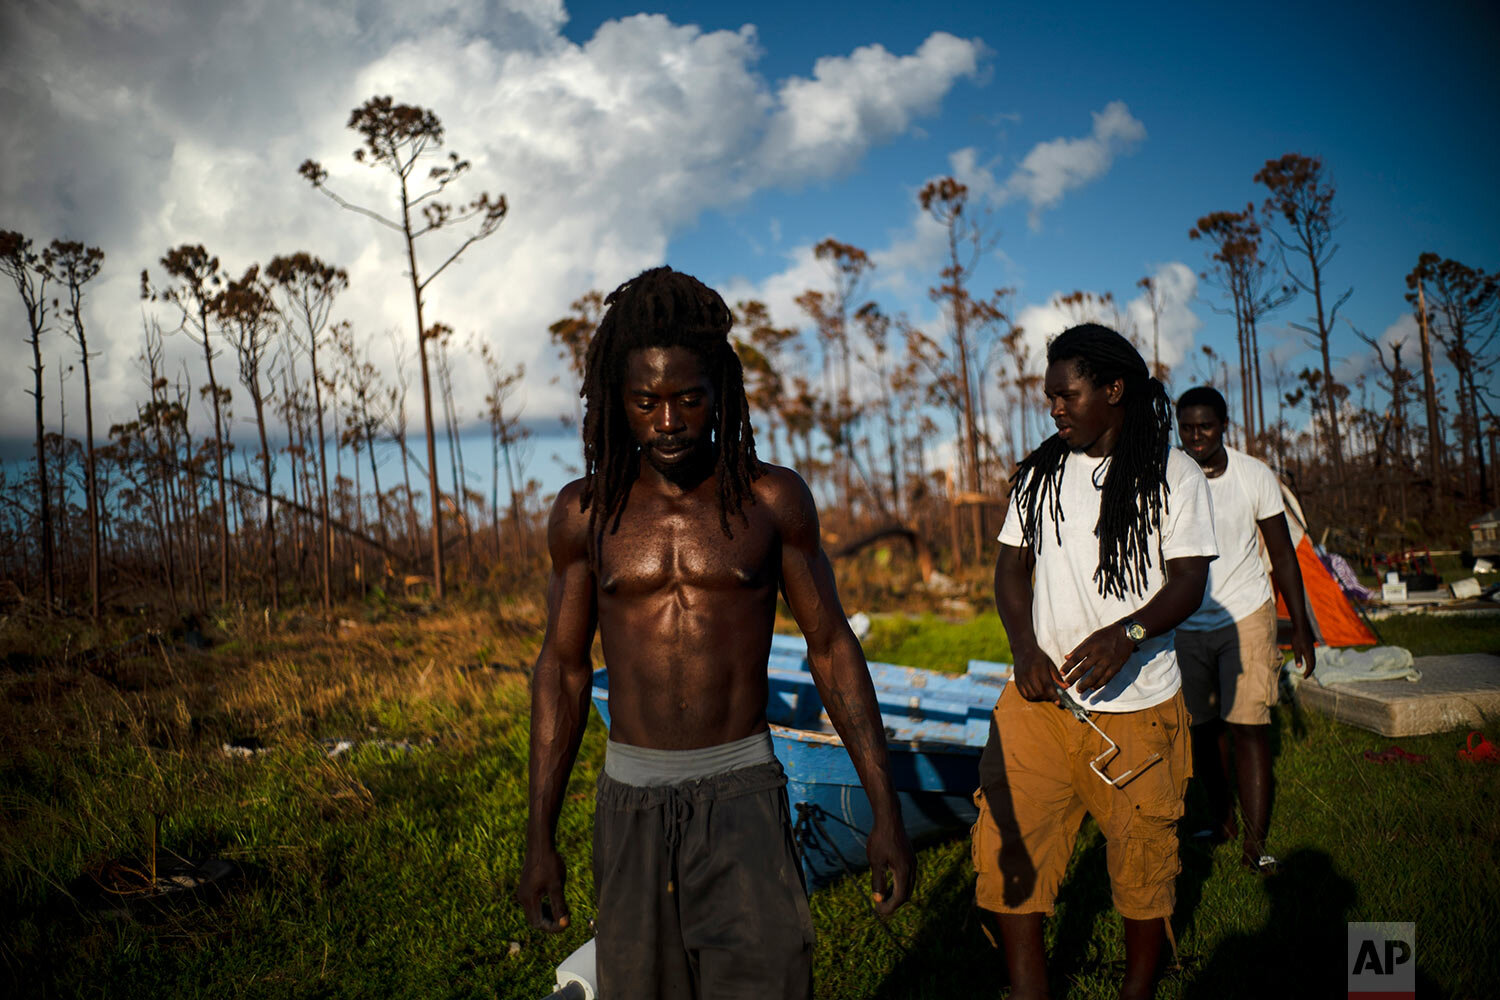 """Dexter Edwards, front, his brother Nathanael Edwards right, and his cousin Valentino Ingraham walk amid one of their family's homes destroyed by Hurricane Dorian in Rocky Creek East End, Grand Bahama, Bahamas, Sunday, Sept. 8, 2019. """"Right now, ain't much joy. You just gotta try to keep your head up,"""" Edwards said. """"There's always a future. Only thing we can do right now is rebuild, rebuild and try to move forward."""" (AP Photo/Ramon Espinosa)"""